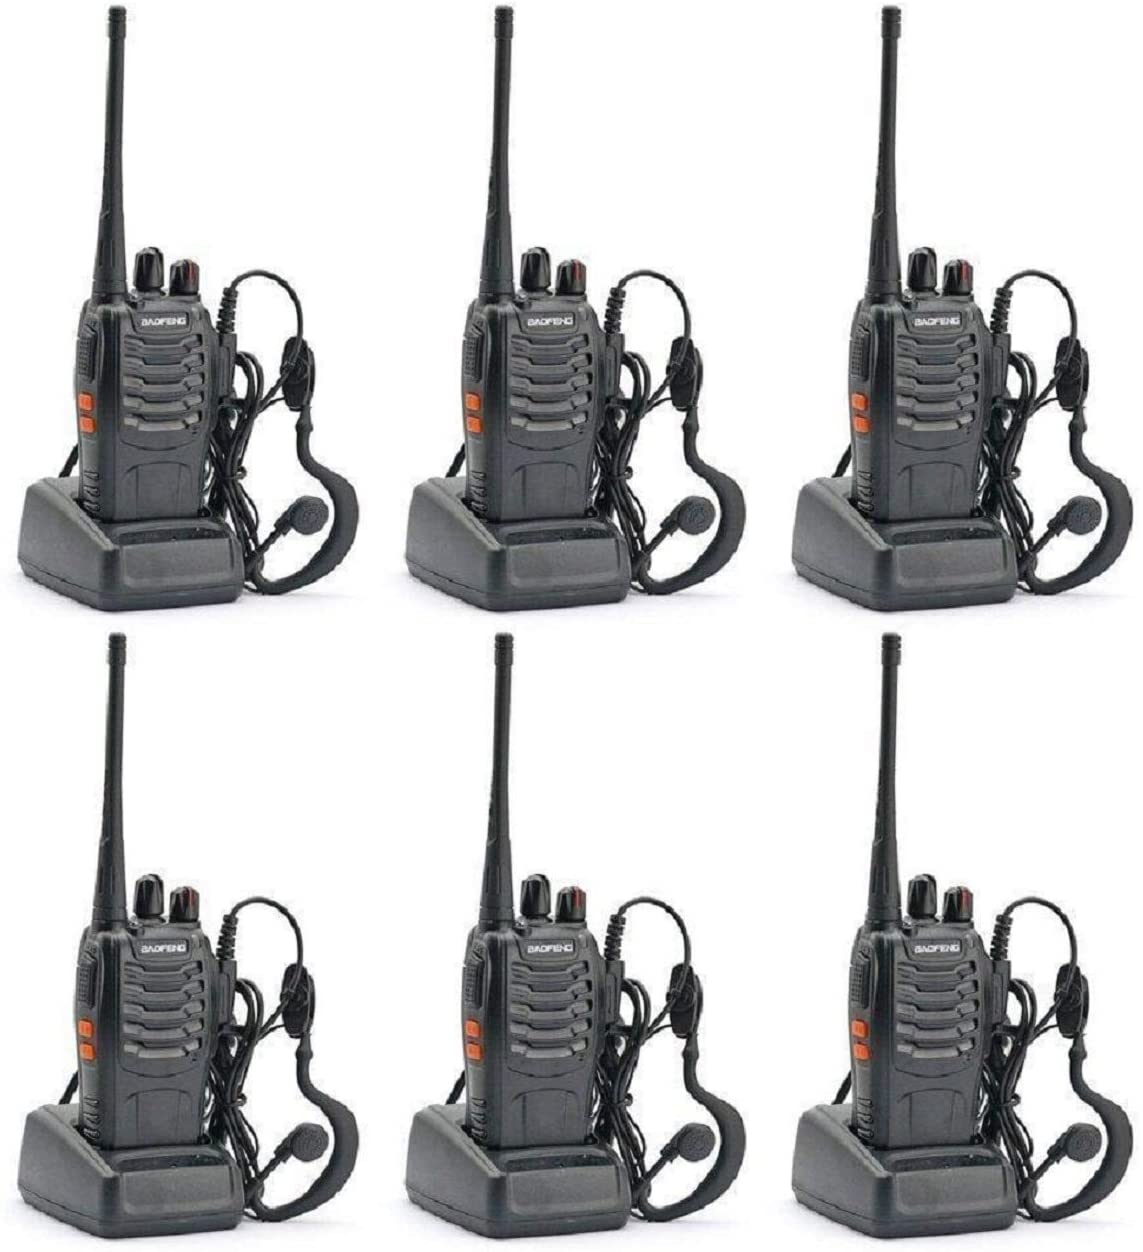 BAOFENG BF-888S Two Way Radio Pack of 6pcs radios – Customize Package